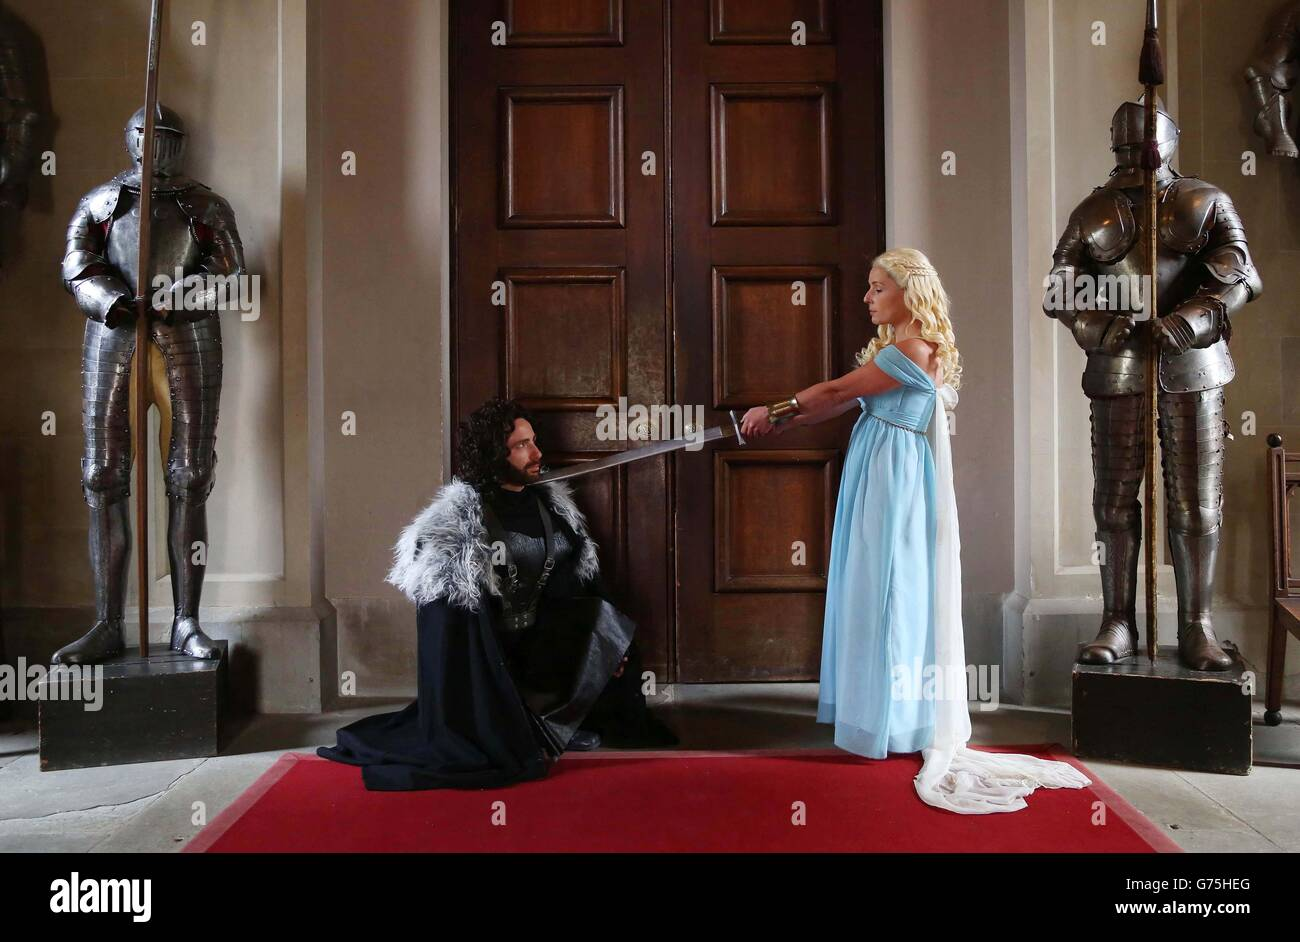 Game Thrones Themed Wedding Stock Photos Game Thrones Themed